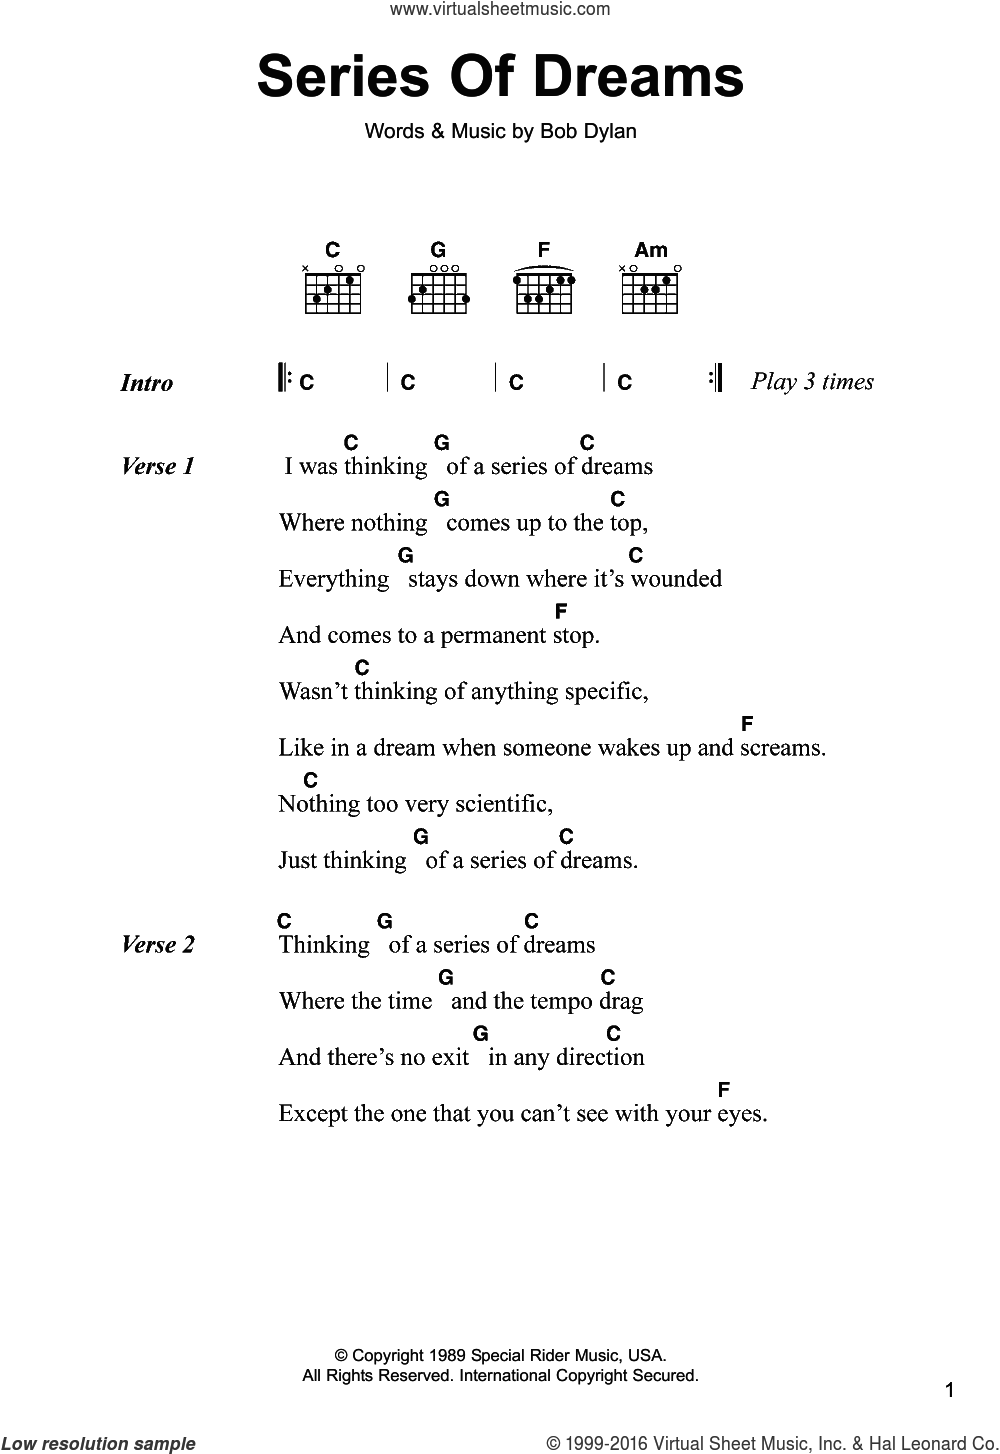 Series Of Dreams sheet music for guitar (chords) by Bob Dylan, intermediate guitar (chords). Score Image Preview.